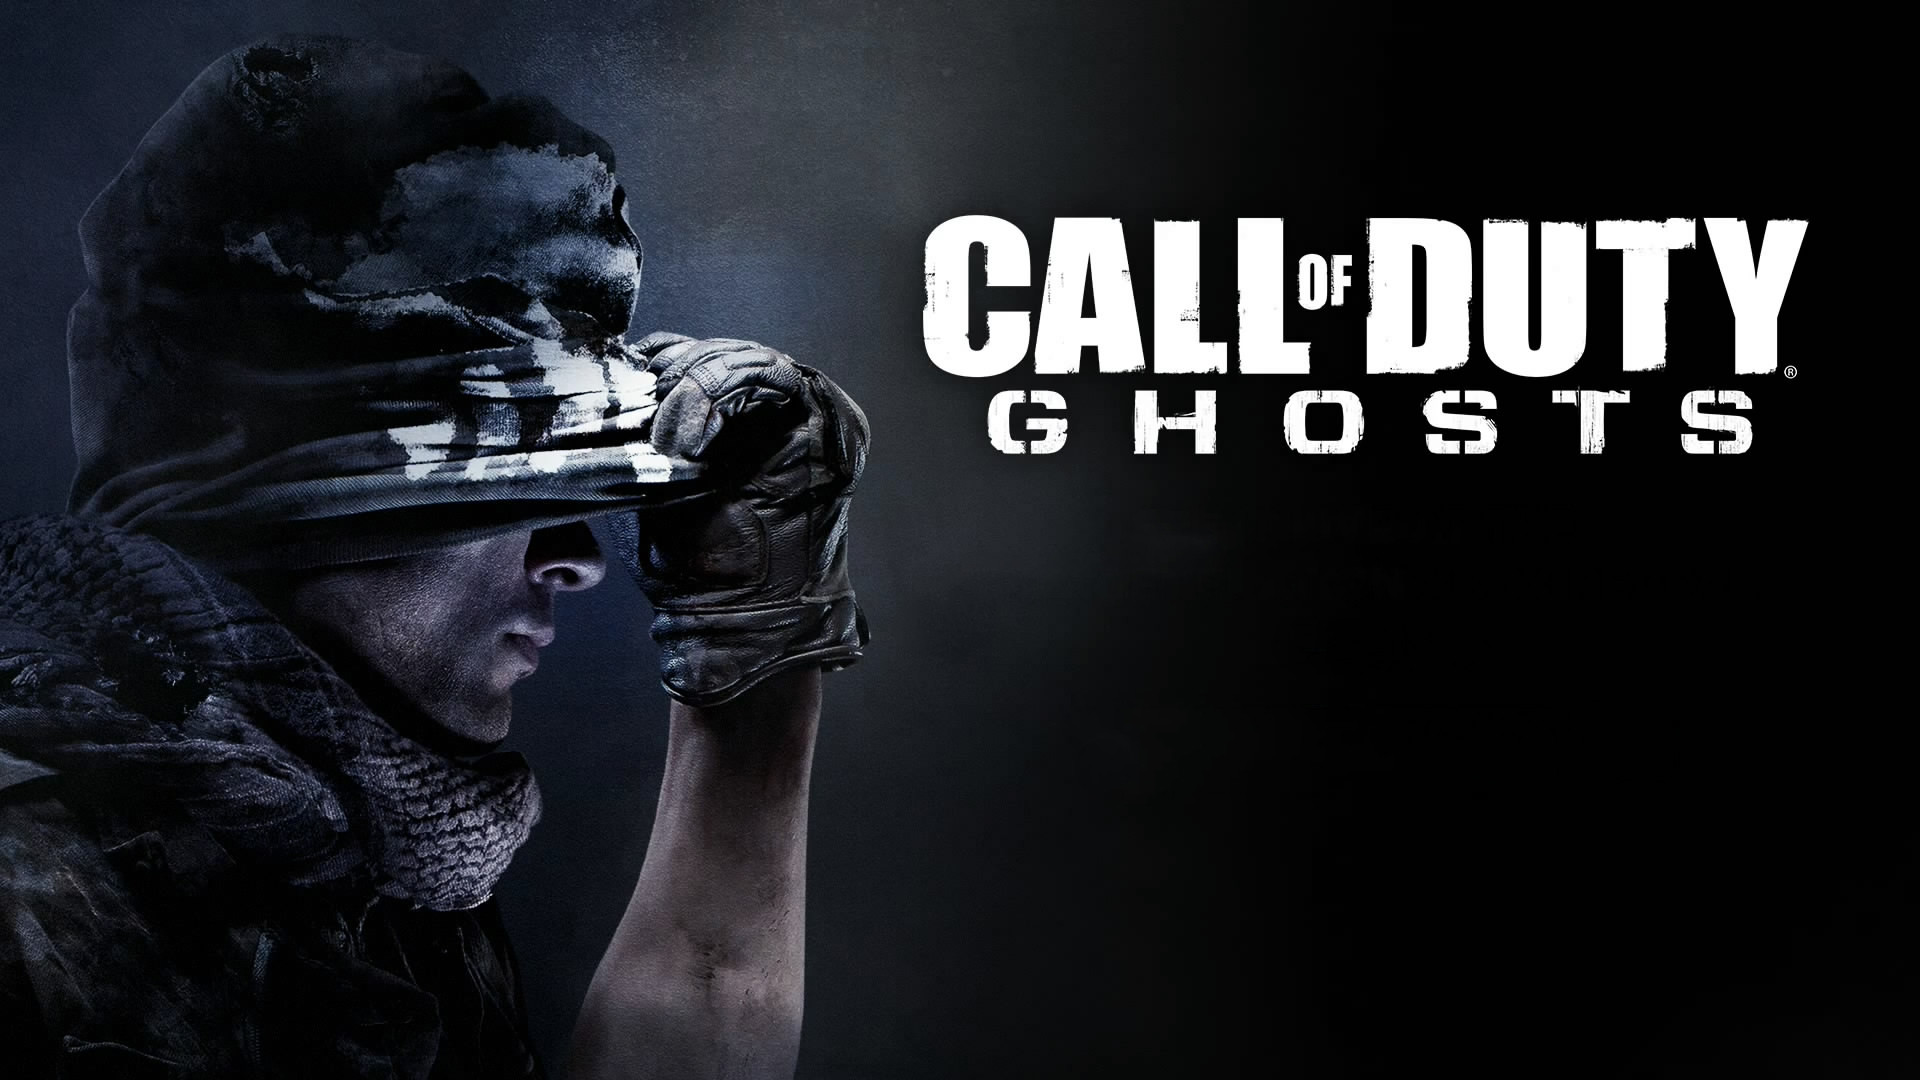 The Second Epic DLC Pack For Call Of Duty: Ghosts, Launching First, Exclusively On Xbox Live